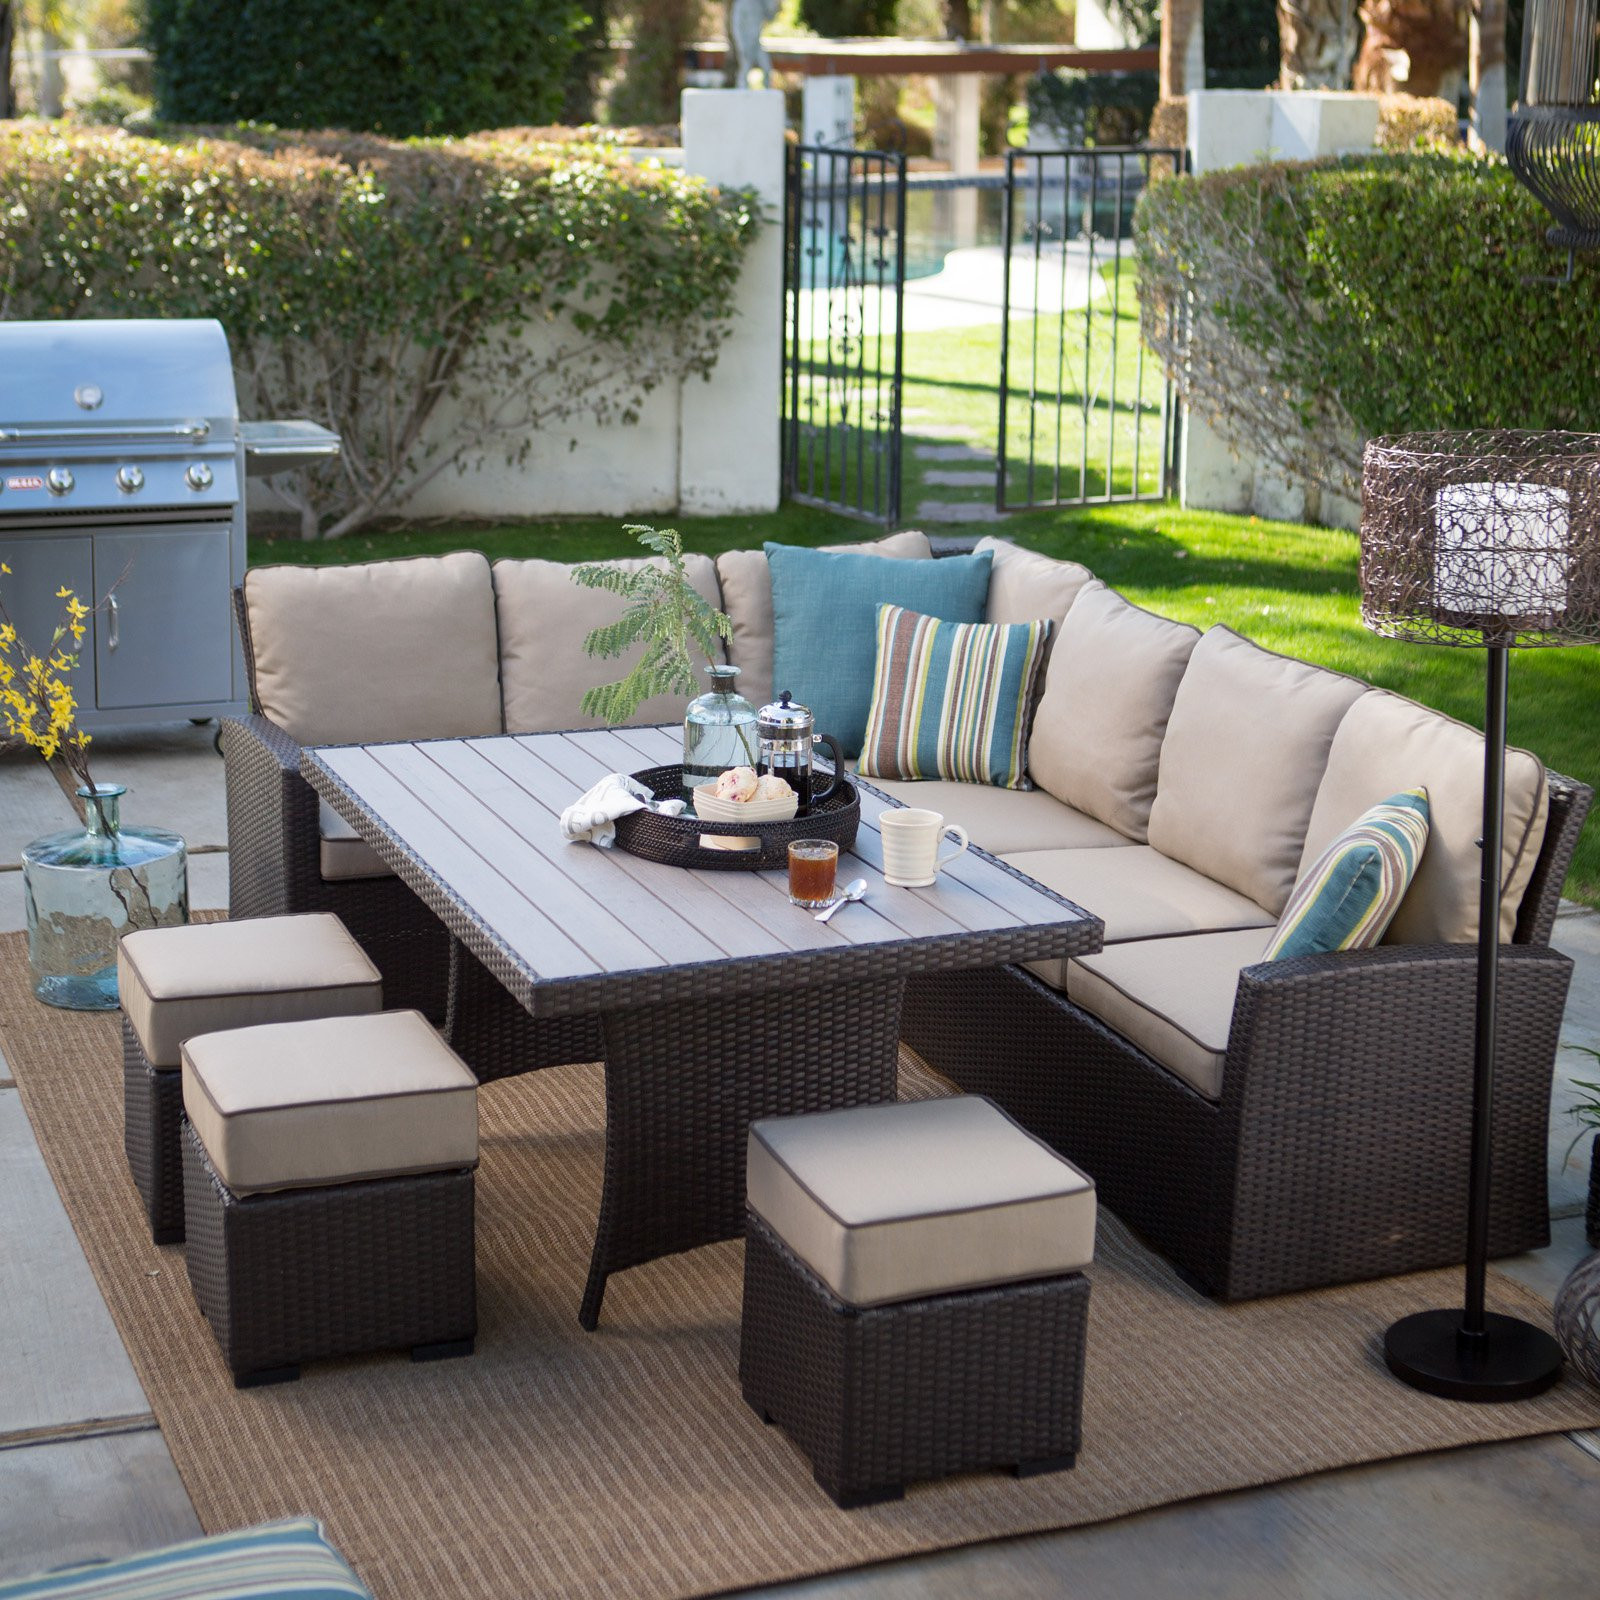 Best ideas about Patio Dining Set . Save or Pin Belham Living Monticello All Weather Wicker Sofa Sectional Now.